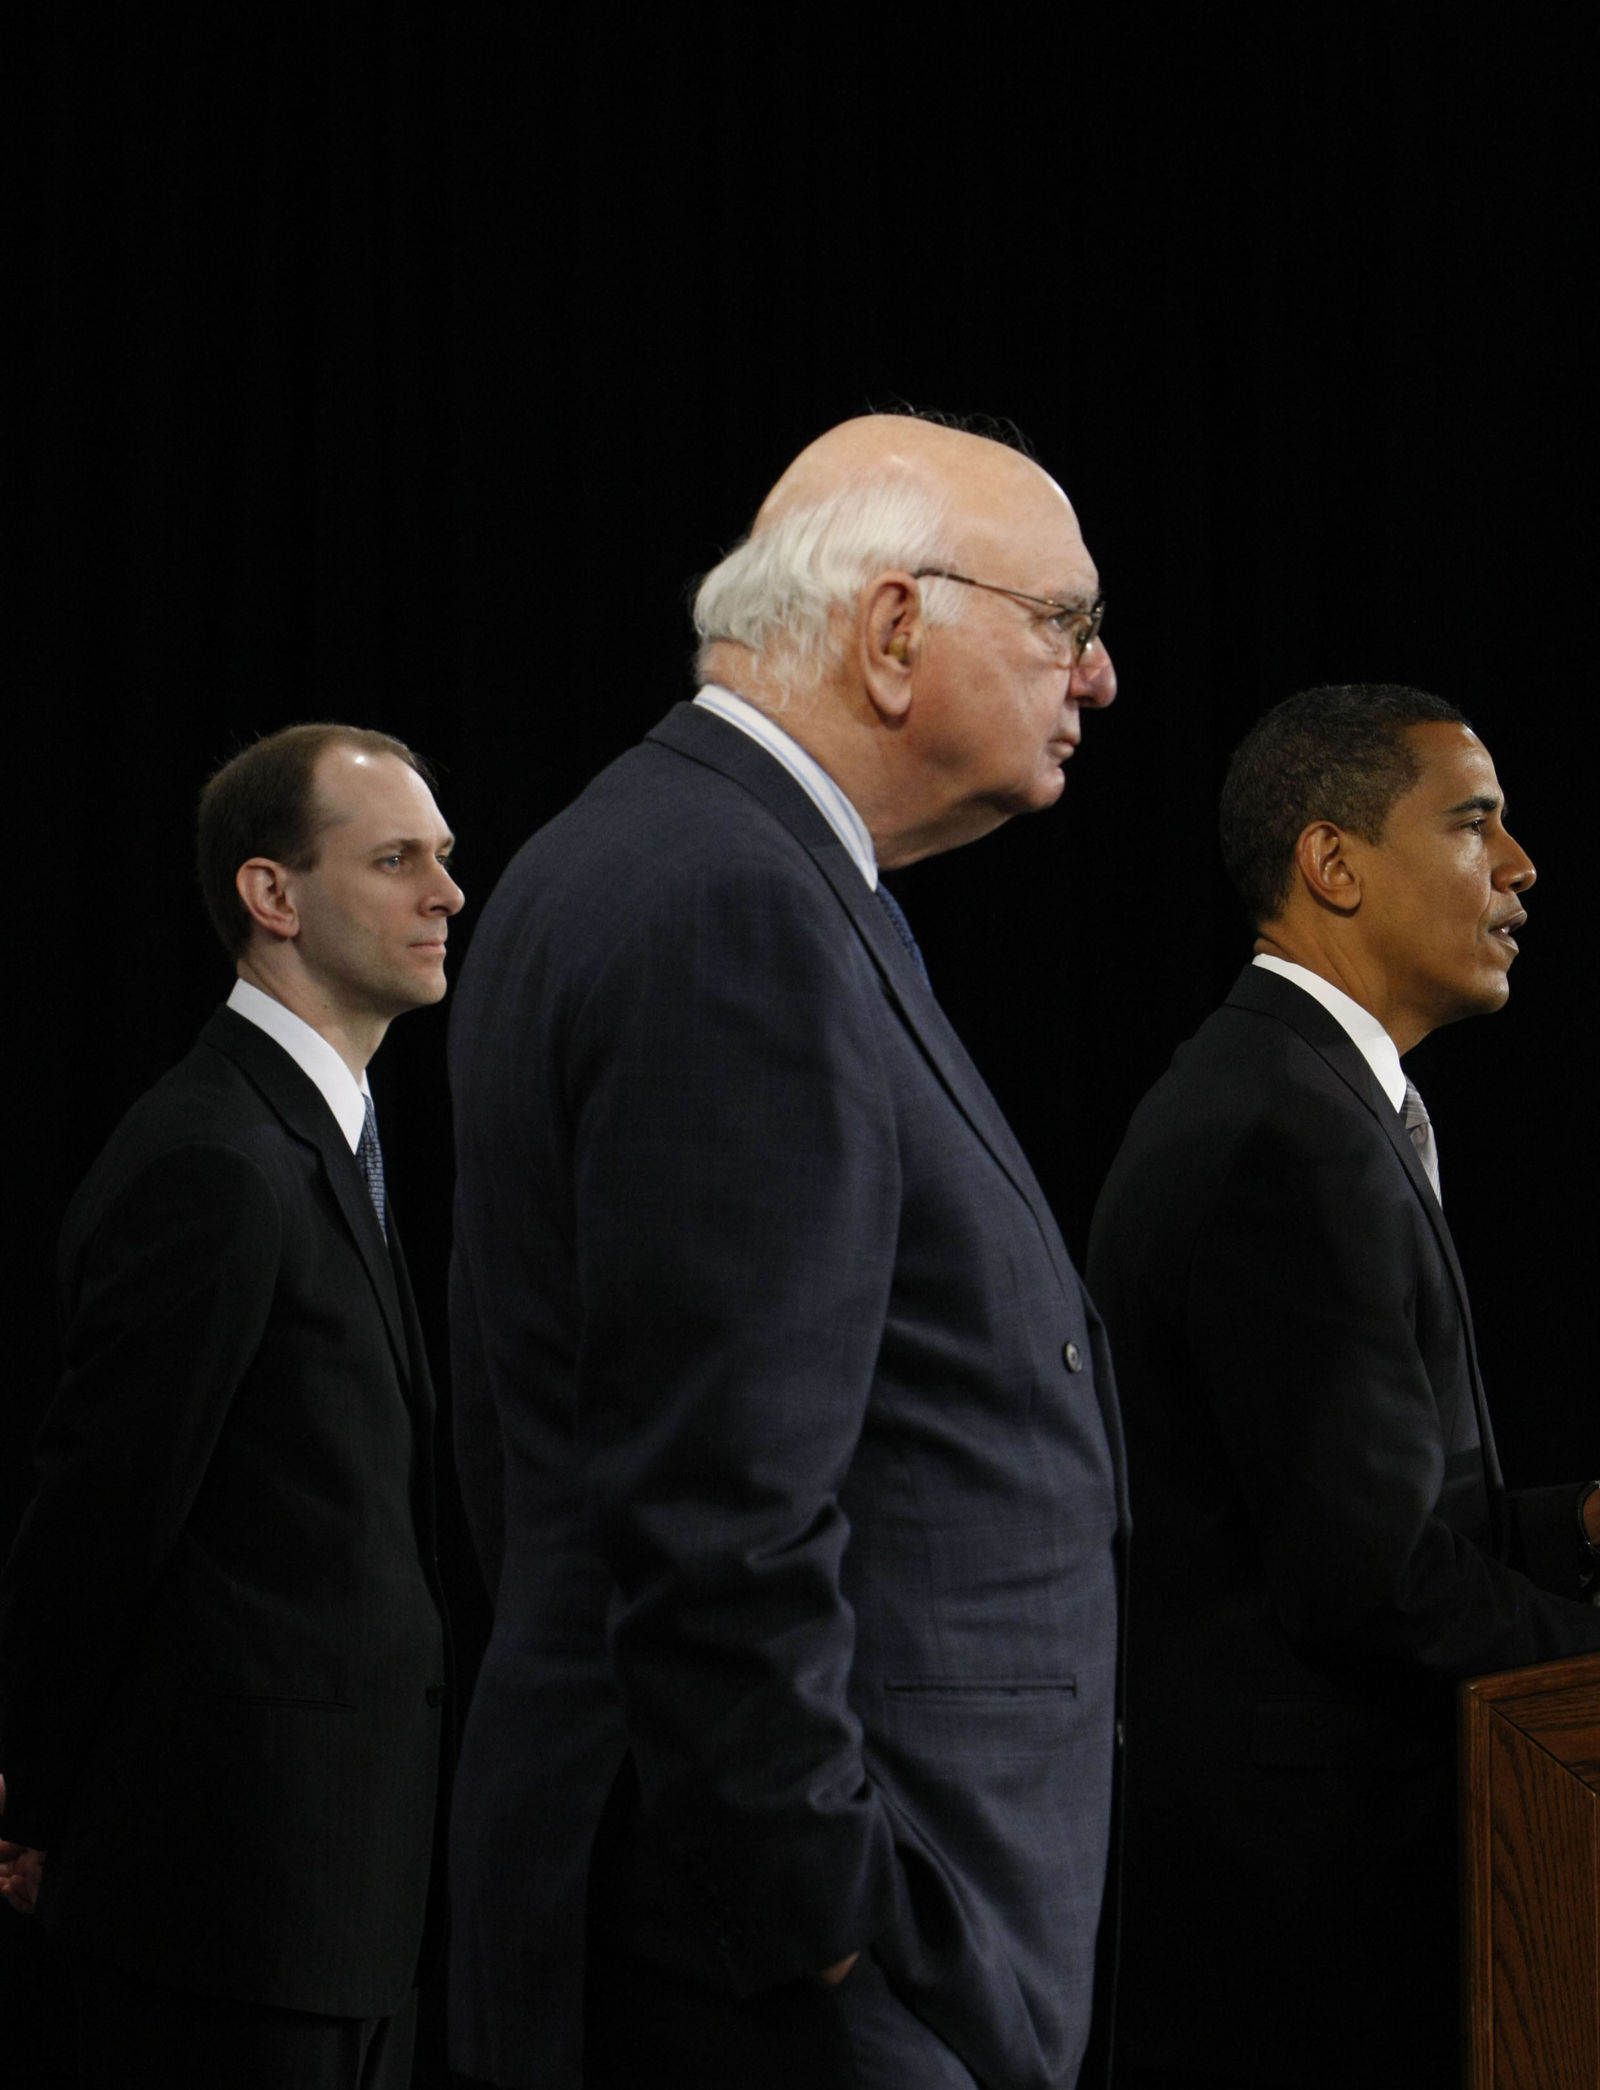 FILE - In this Nov. 26, 2008, file photo President-elect Barack Obama, right, stands with former Federal Reserve Chairman Paul Volcker, chairman-designate of the Economic Recovery Advisory Board, center, and chief economist-designate Austan Goolsbee, left, as he speaks at a news conference in Chicago. (AP Photo/Pablo Martinez Monsivais, File)